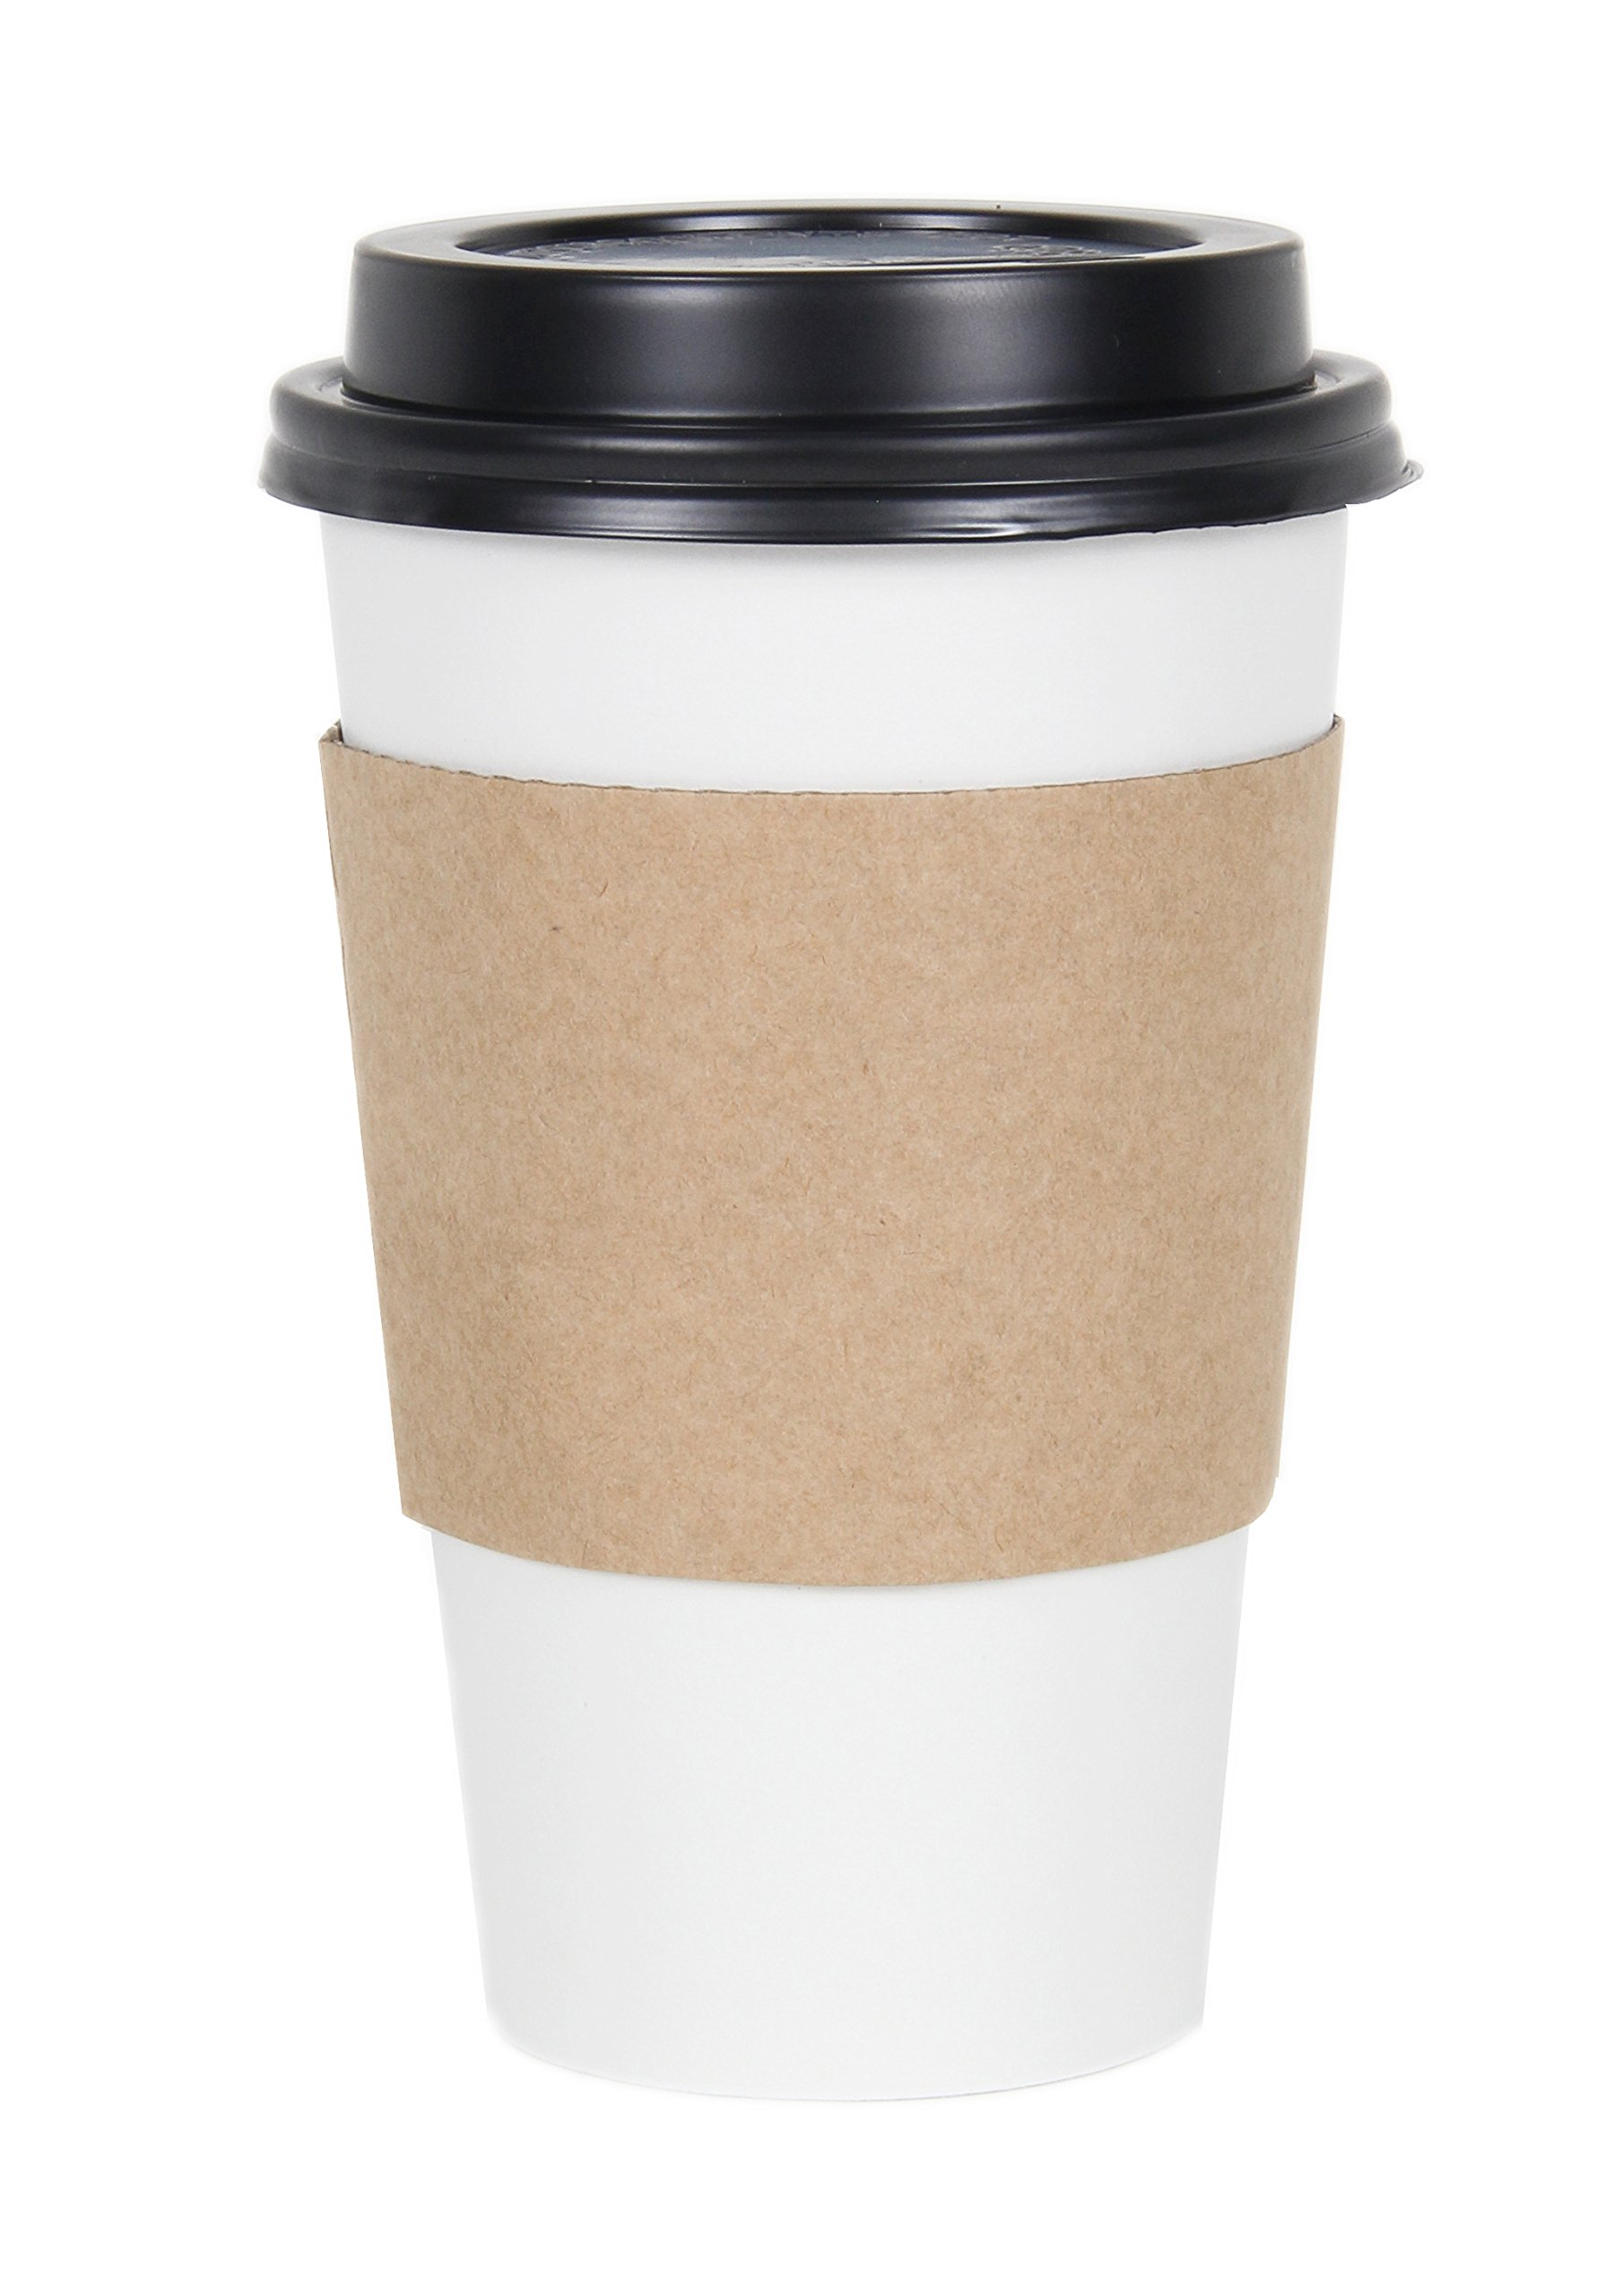 CucinaPrime WHITE Paper Coffee Hot Cups with BLACK Travel Lids and Sleeves - 16 oz, 100 Count